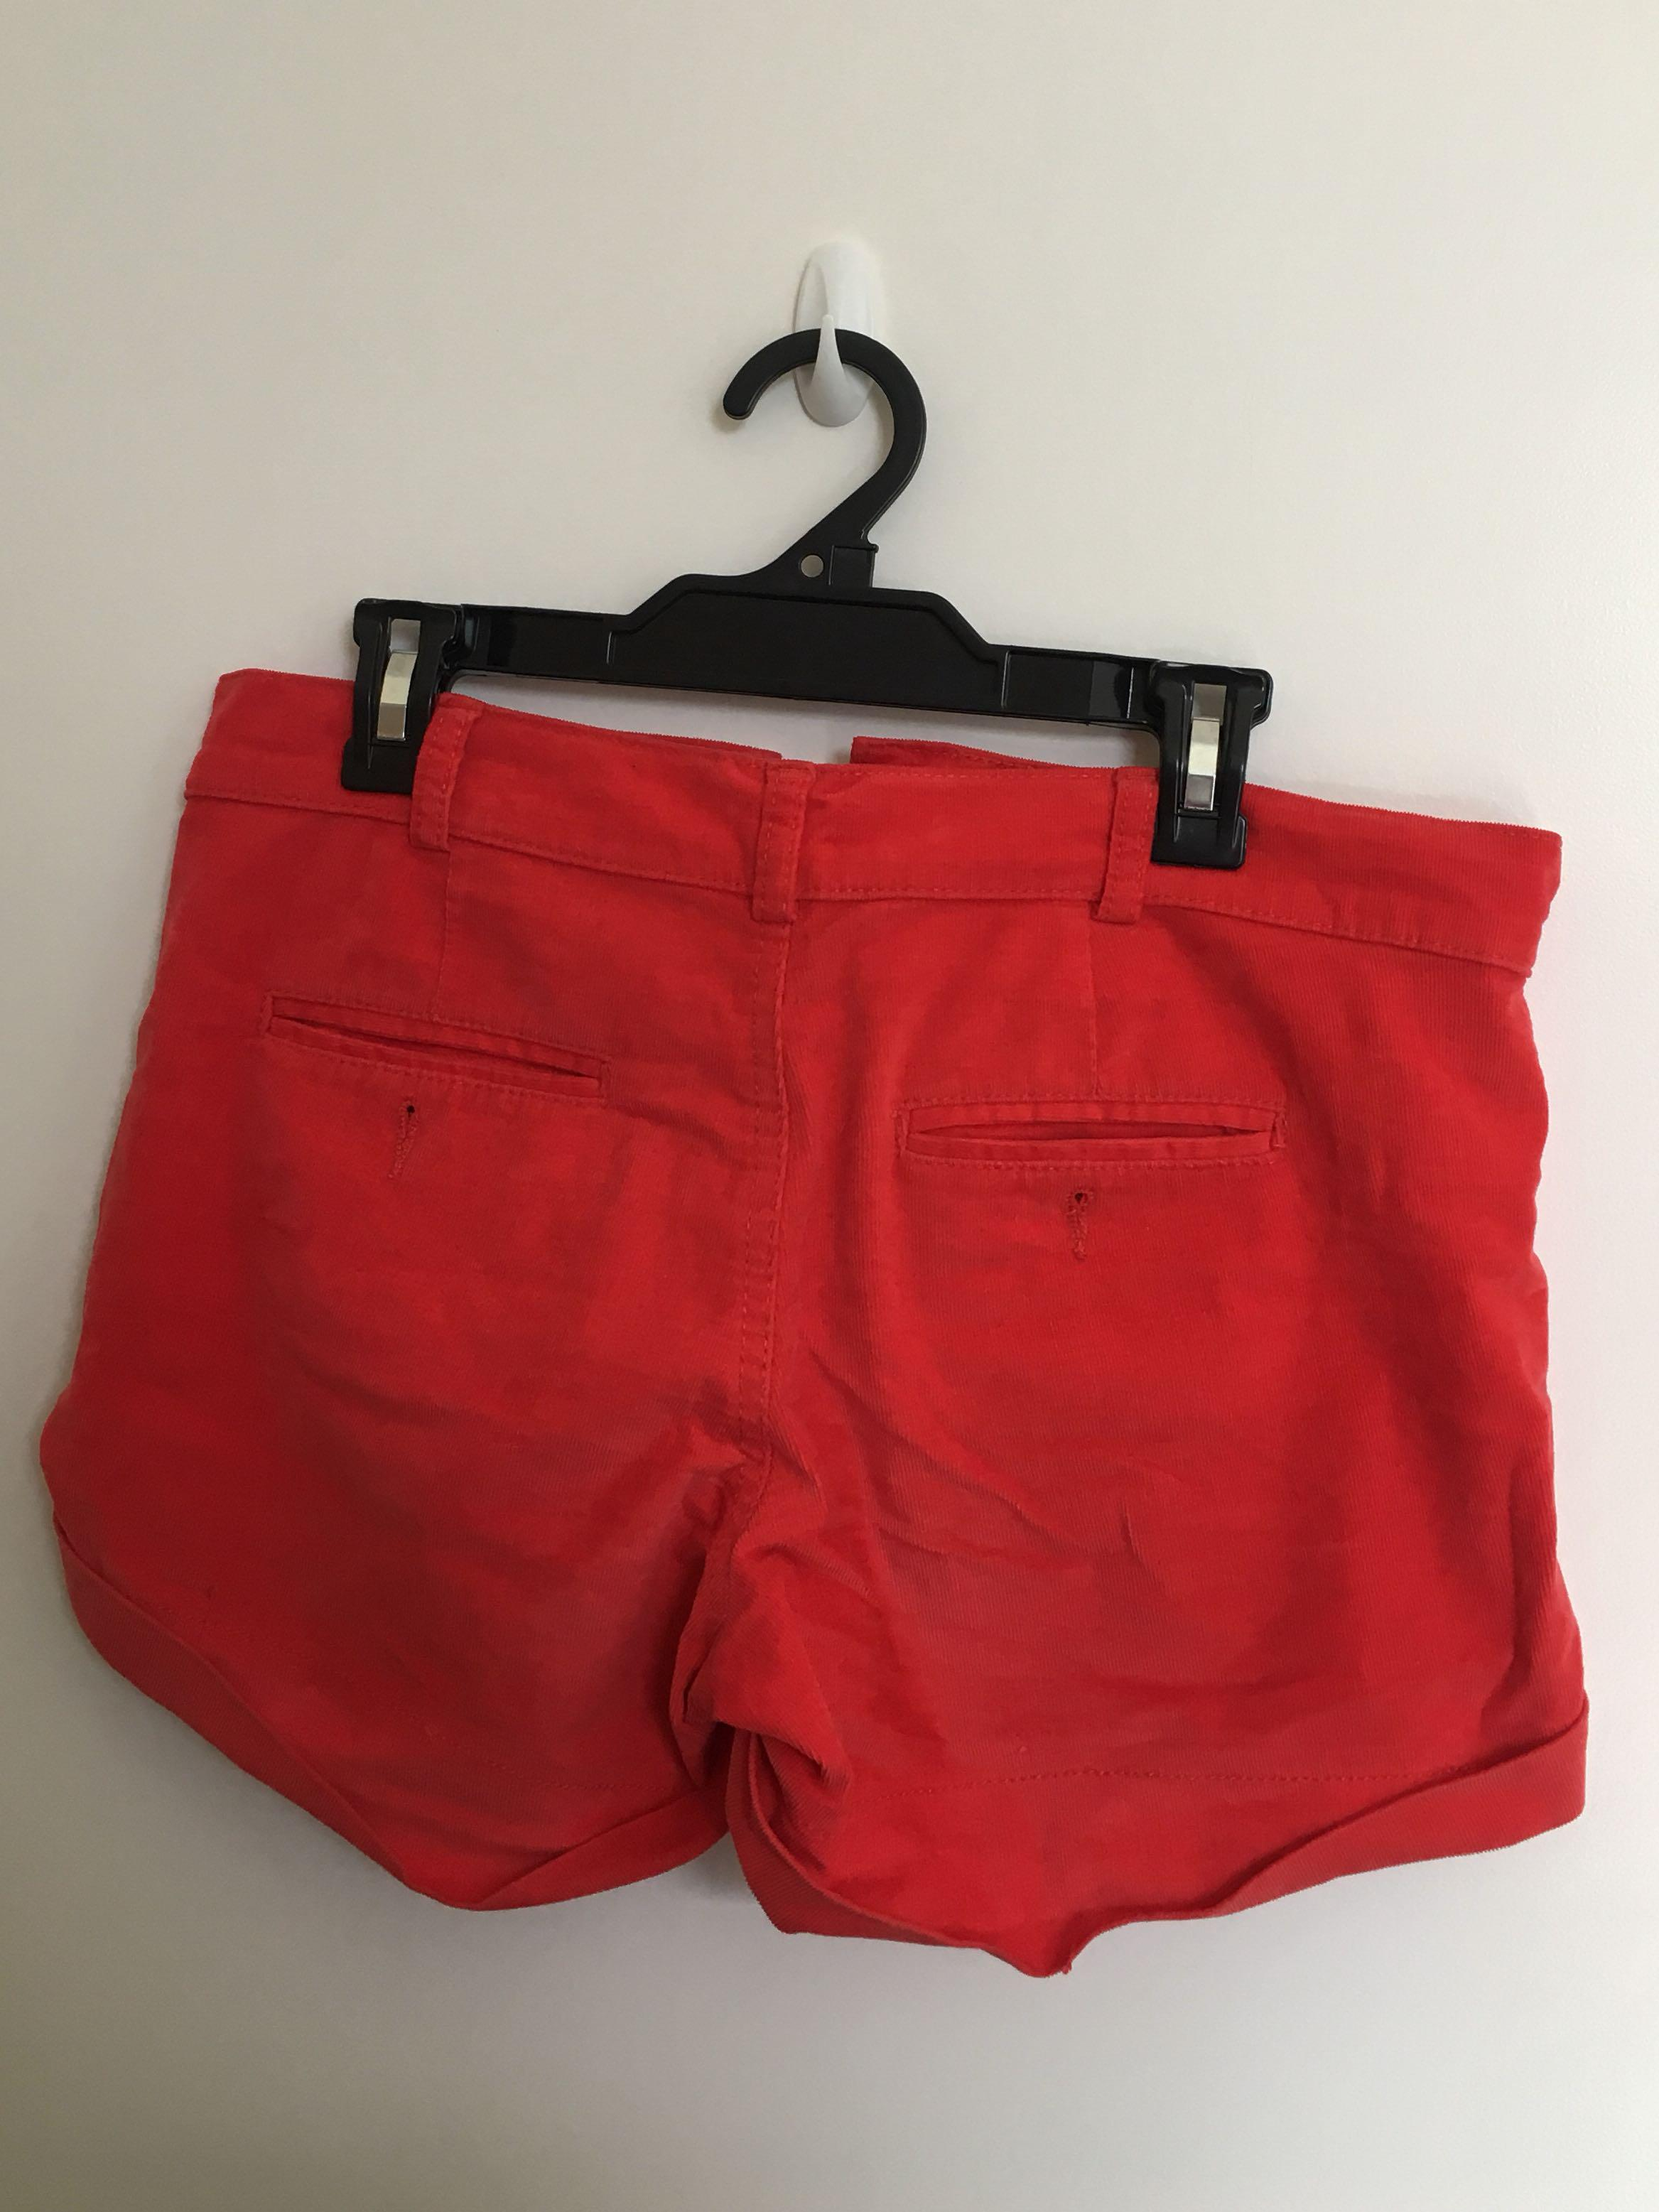 Benetton Dark orange/Red Shorts (S/M)